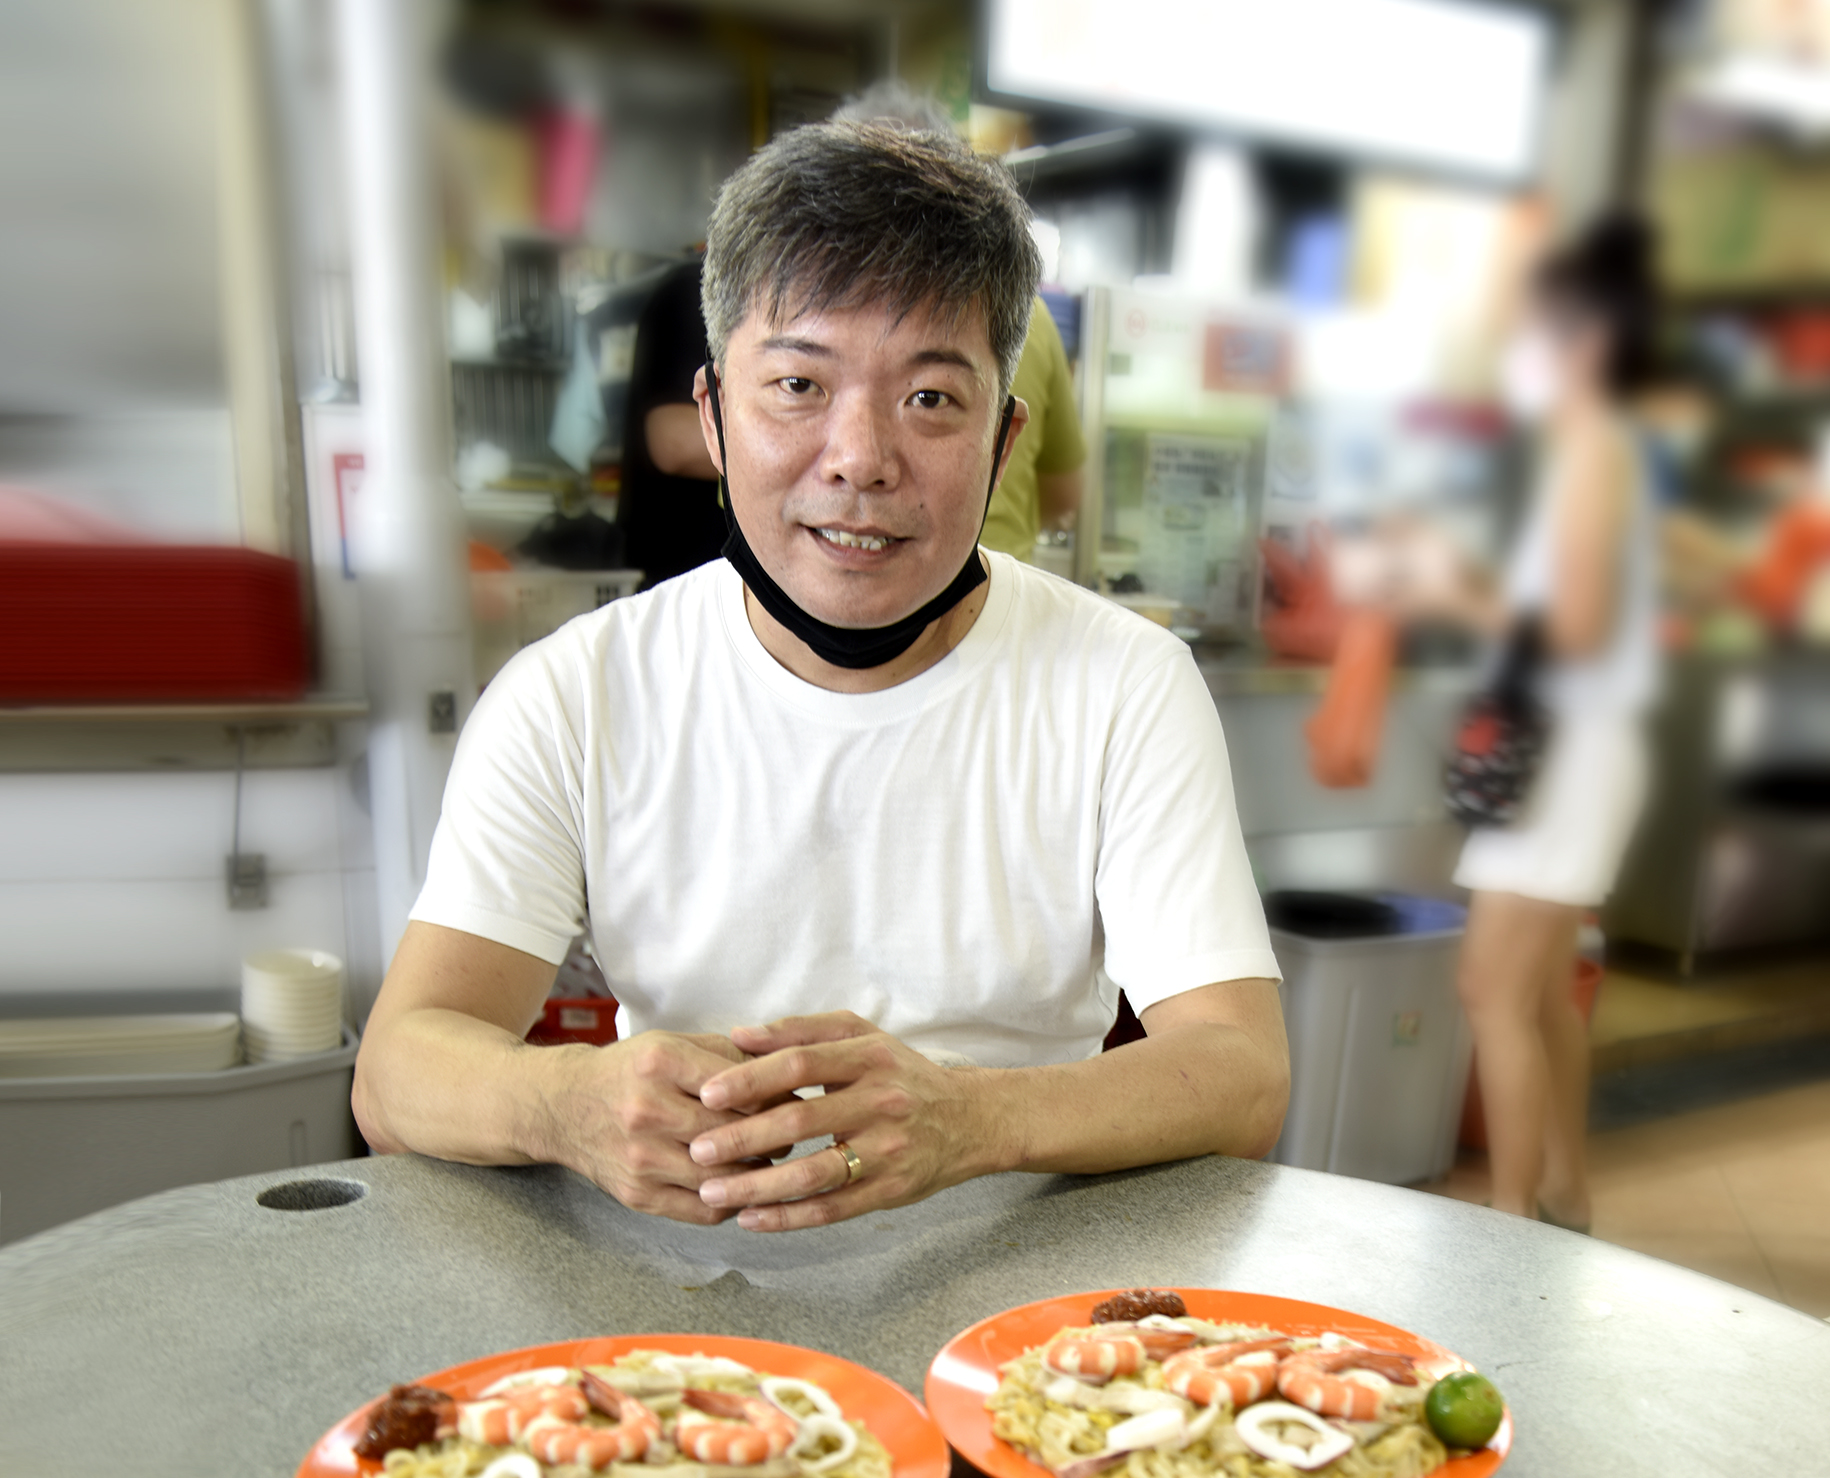 EXCLUSIVE INTERVIEW: Pilot of Major Airline venture into Hawker Foodfare